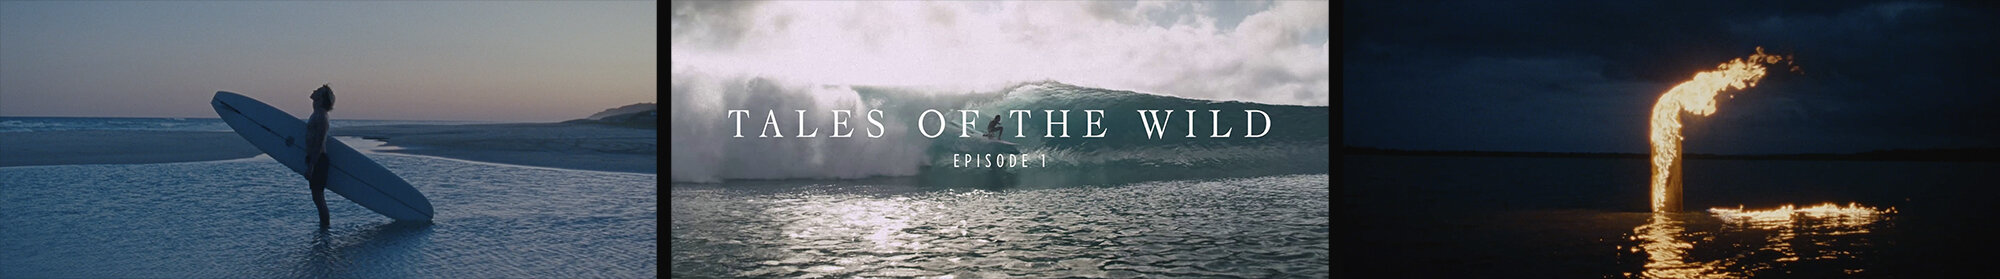 """DIOR  SAUVAGE I TALES OF THE WILD - Ep. 1 """"SOLACE"""" I Dir. CLEMENT BEAUVAIS"""